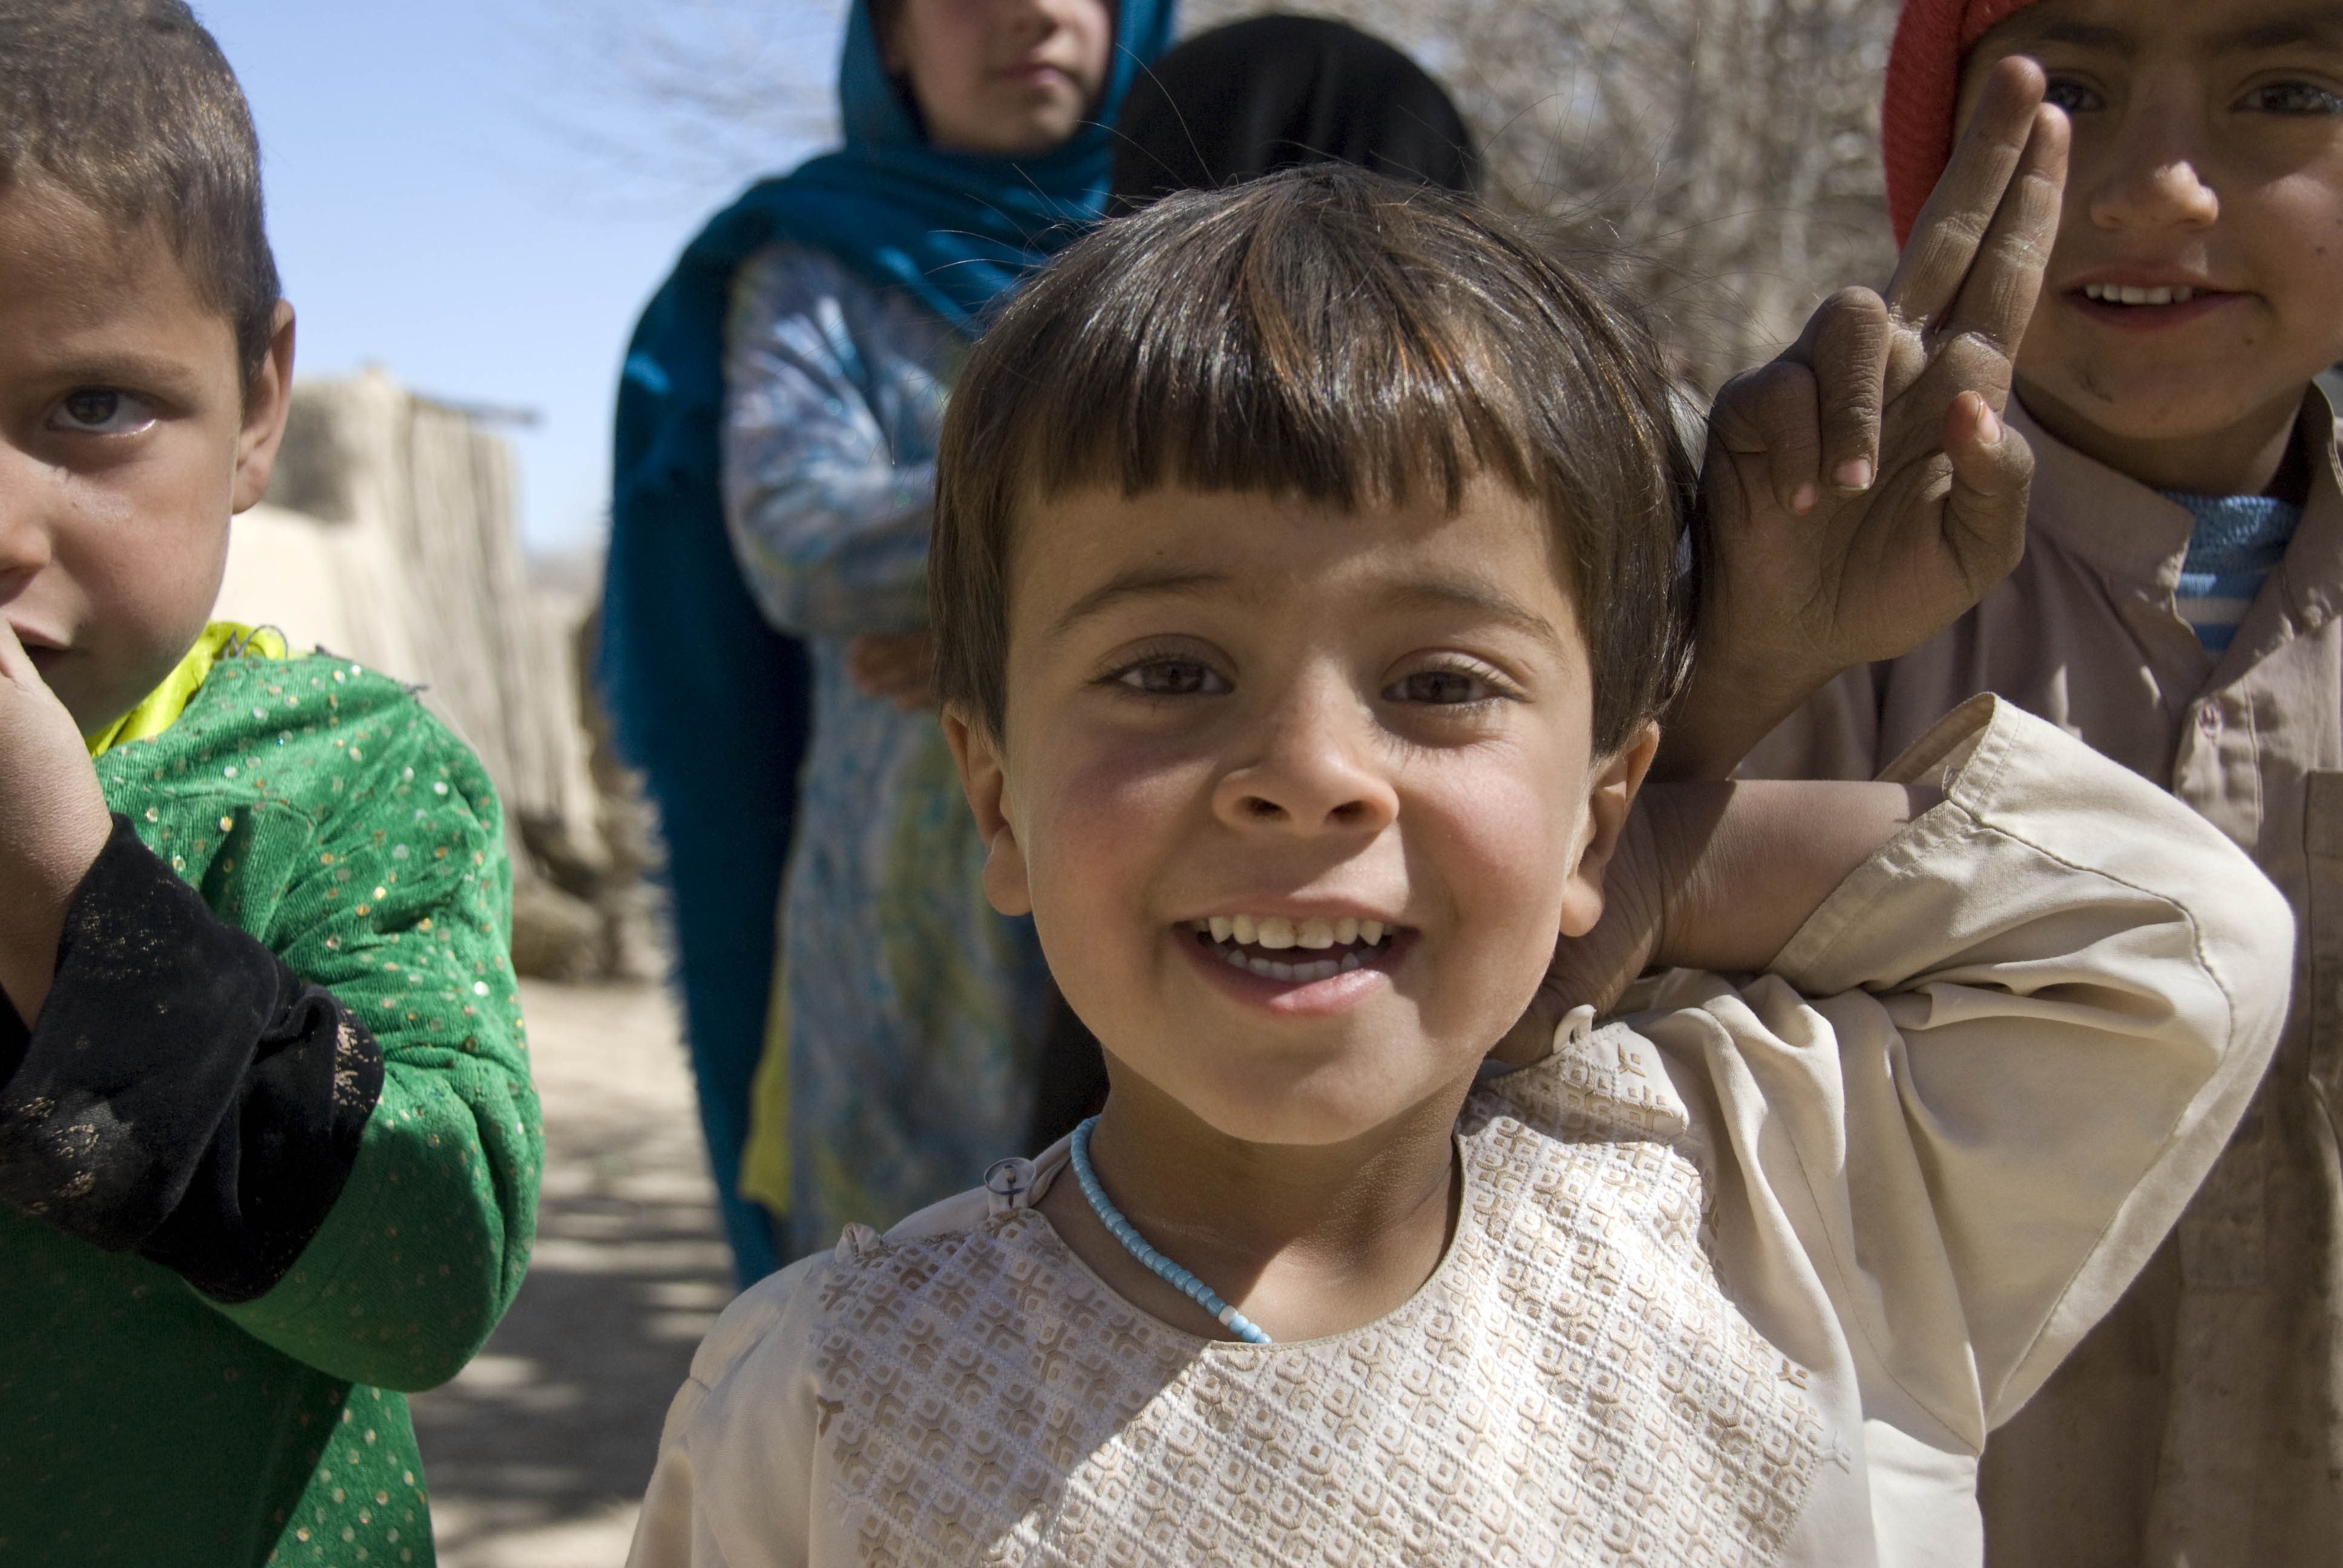 Https Commons Wikimedia Org Wiki File Afghan Children Smile At Gis A Jpg